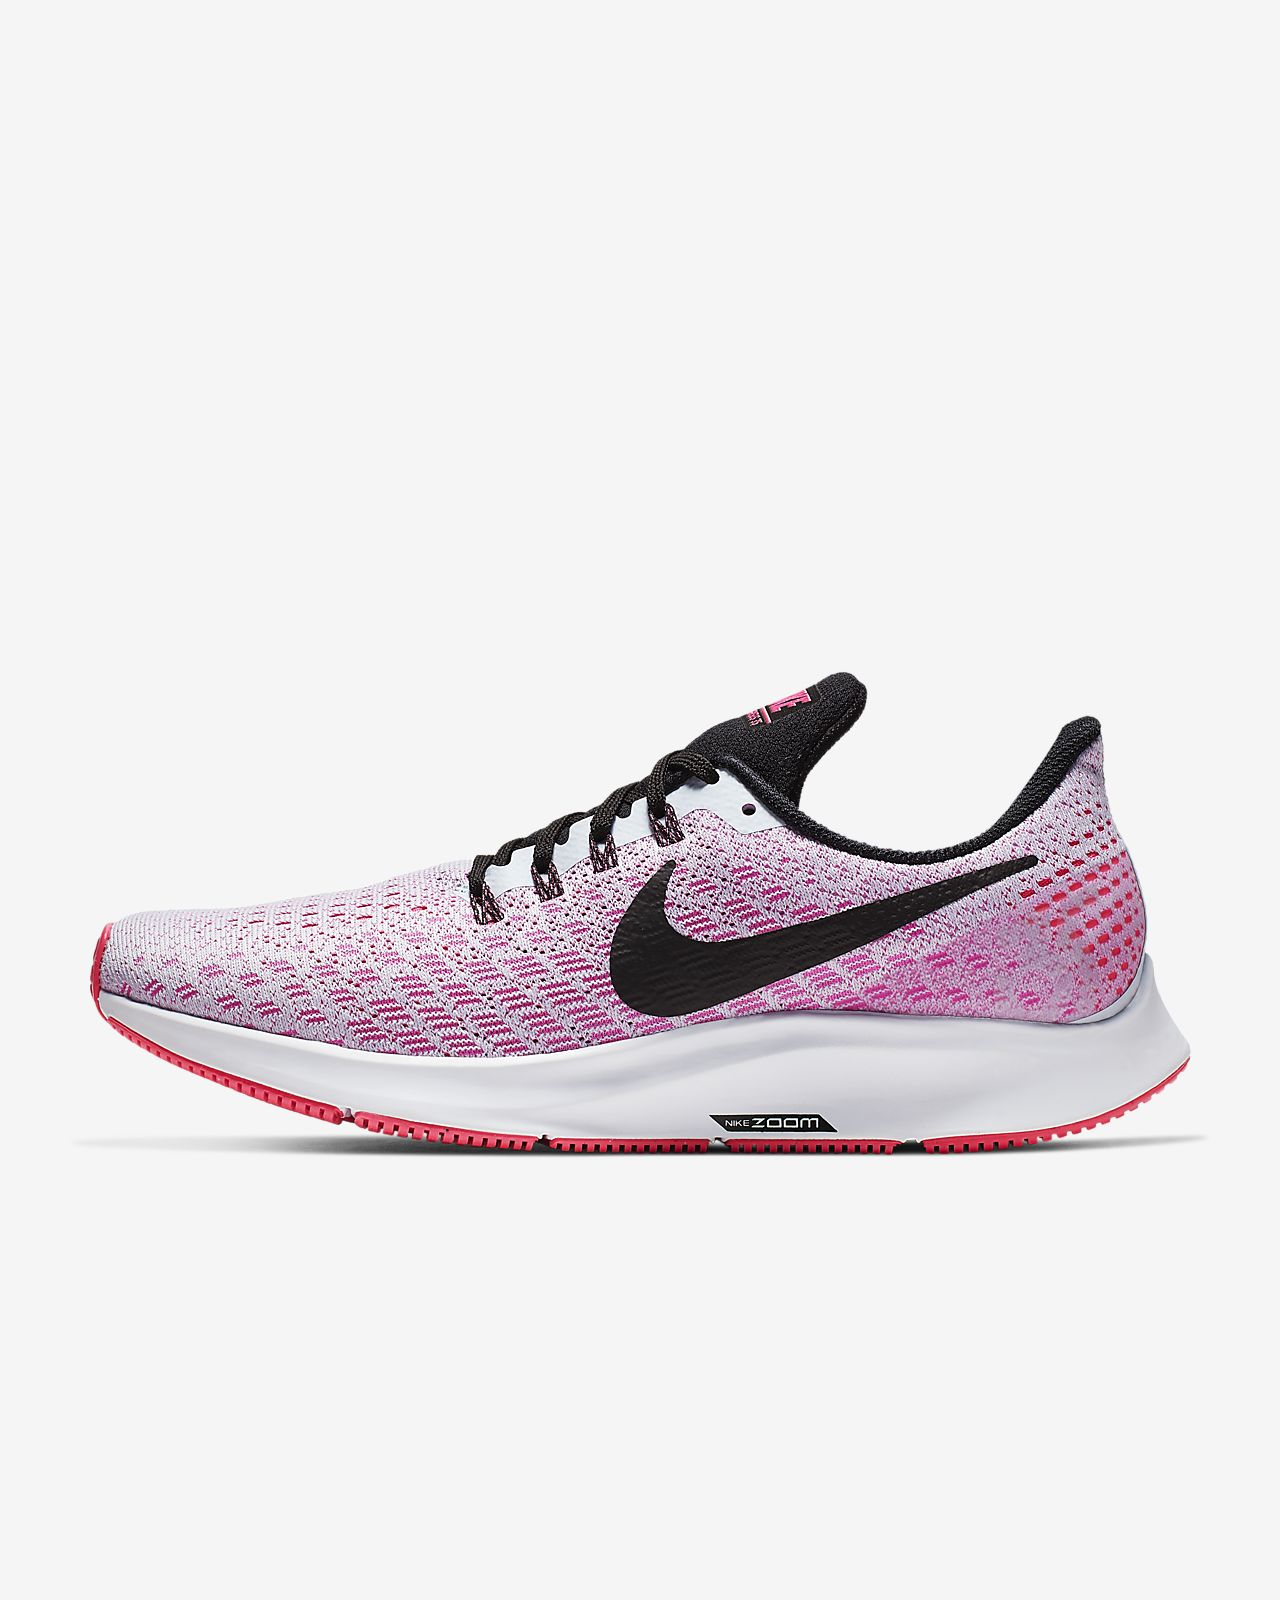 wholesale dealer 0c440 fae19 Women s Running Shoe. Nike Air Zoom Pegasus 35